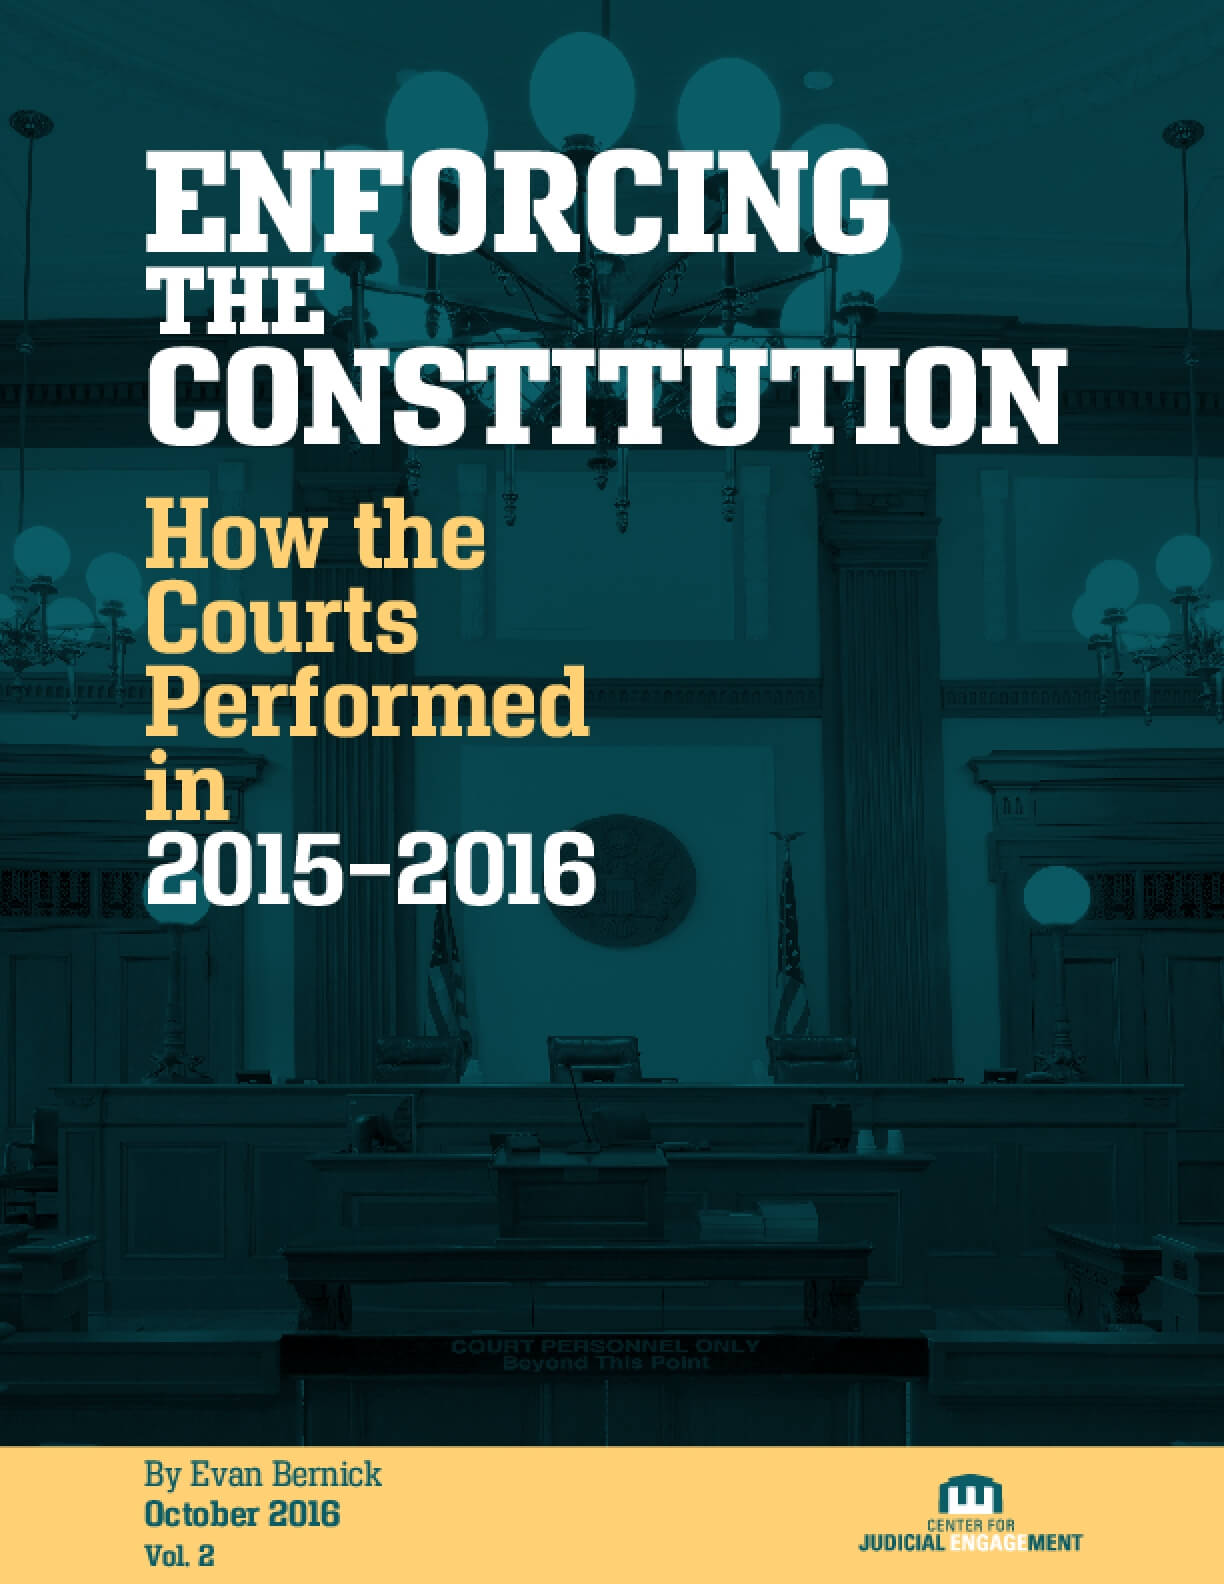 Enforcing the Constitution: How the Courts Performed in 2015-2016